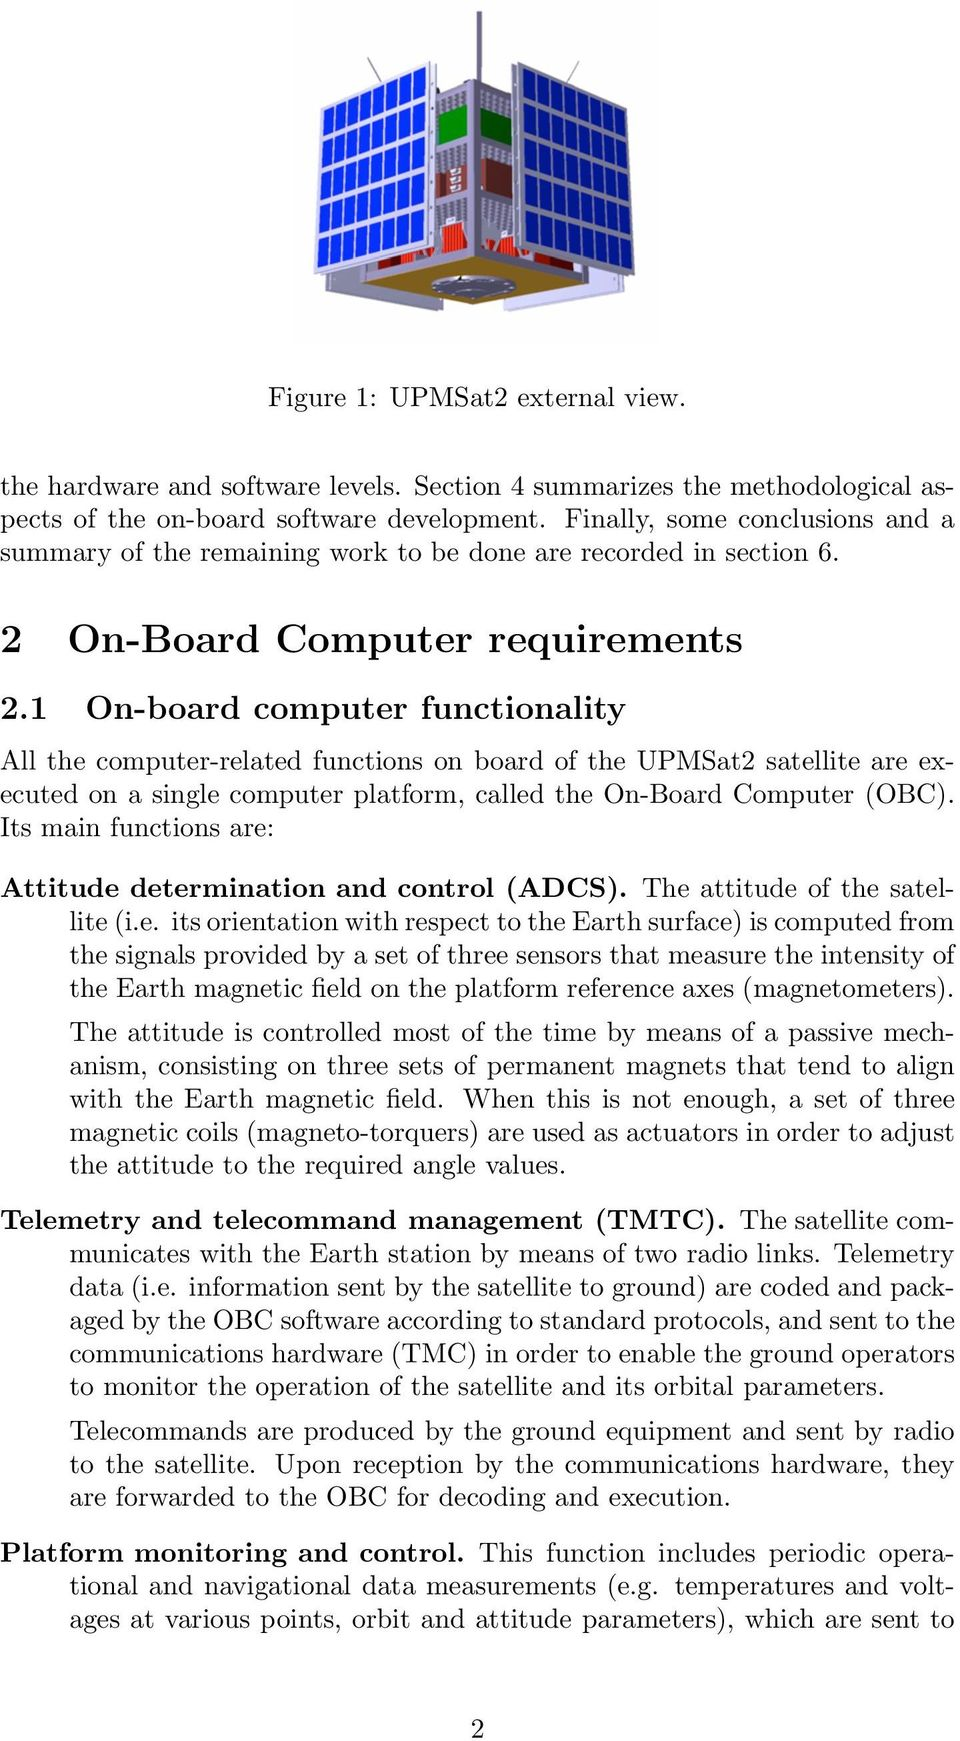 1 On-board computer functionality All the computer-related functions on board of the UPMSat2 satellite are executed on a single computer platform, called the On-Board Computer (OBC).